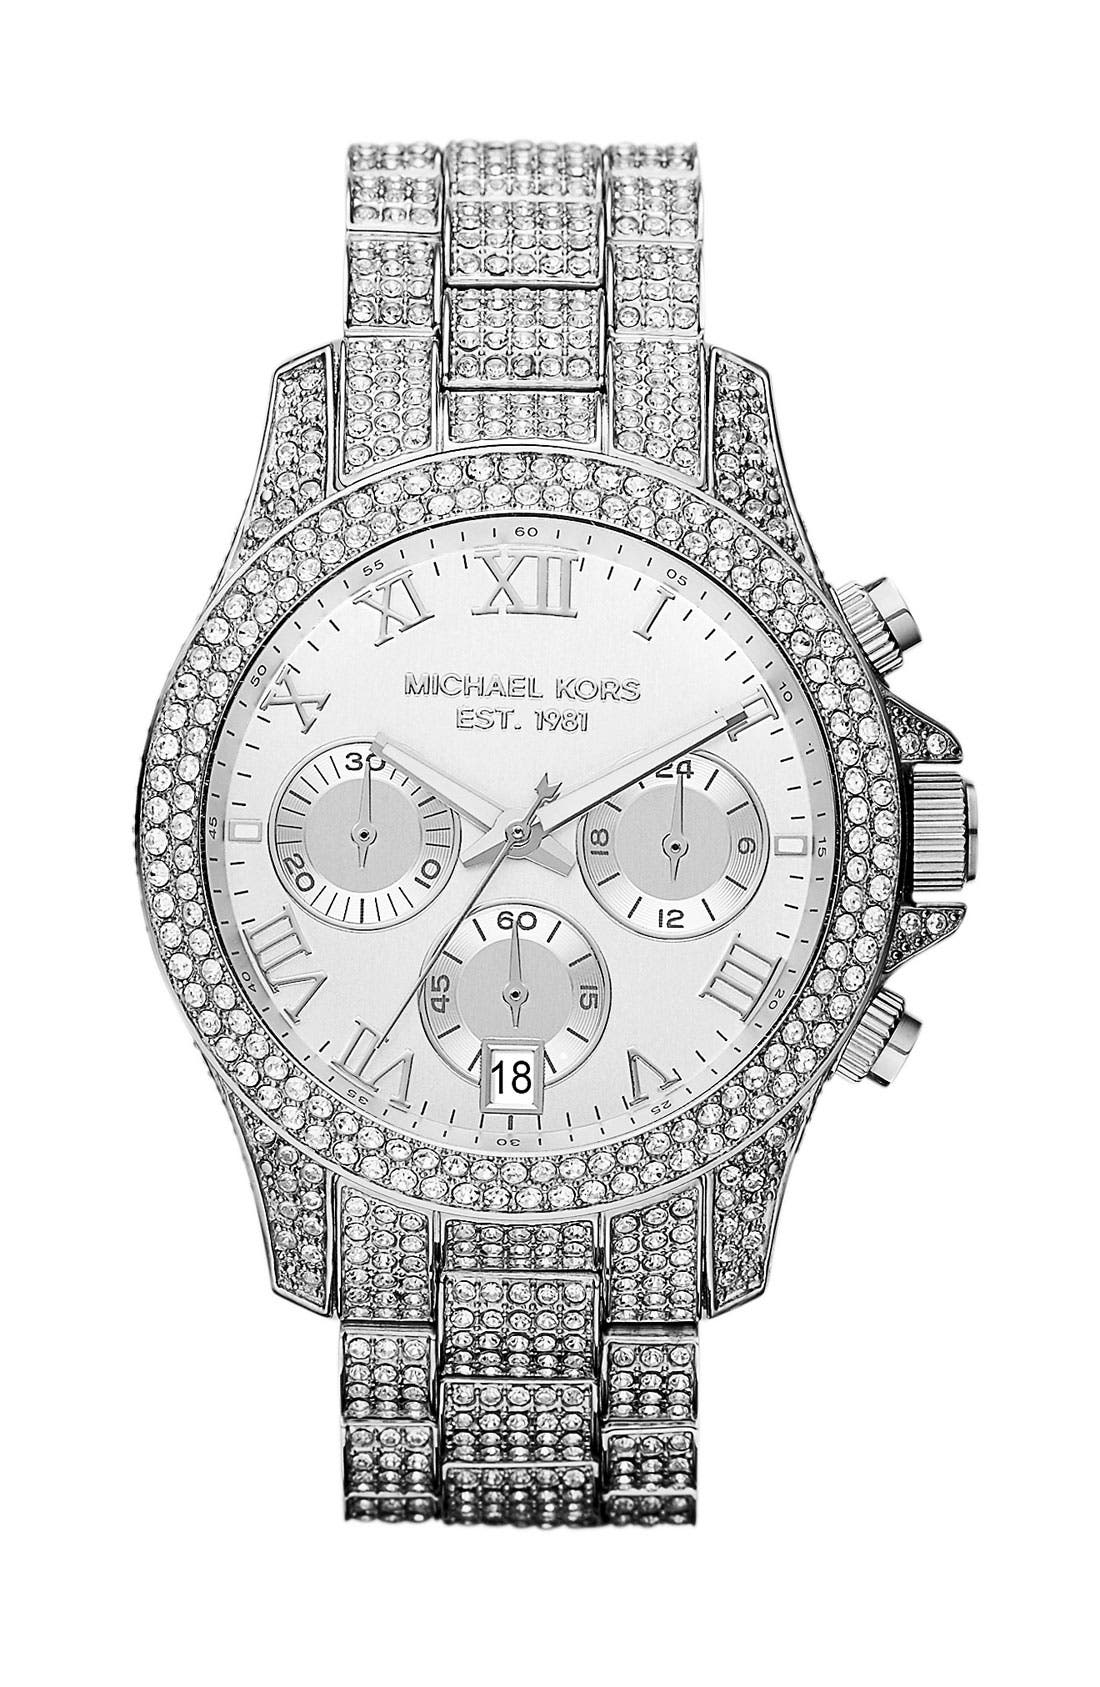 Alternate Image 1 Selected - Michael Kors 'Layton' Crystal Encrusted Watch